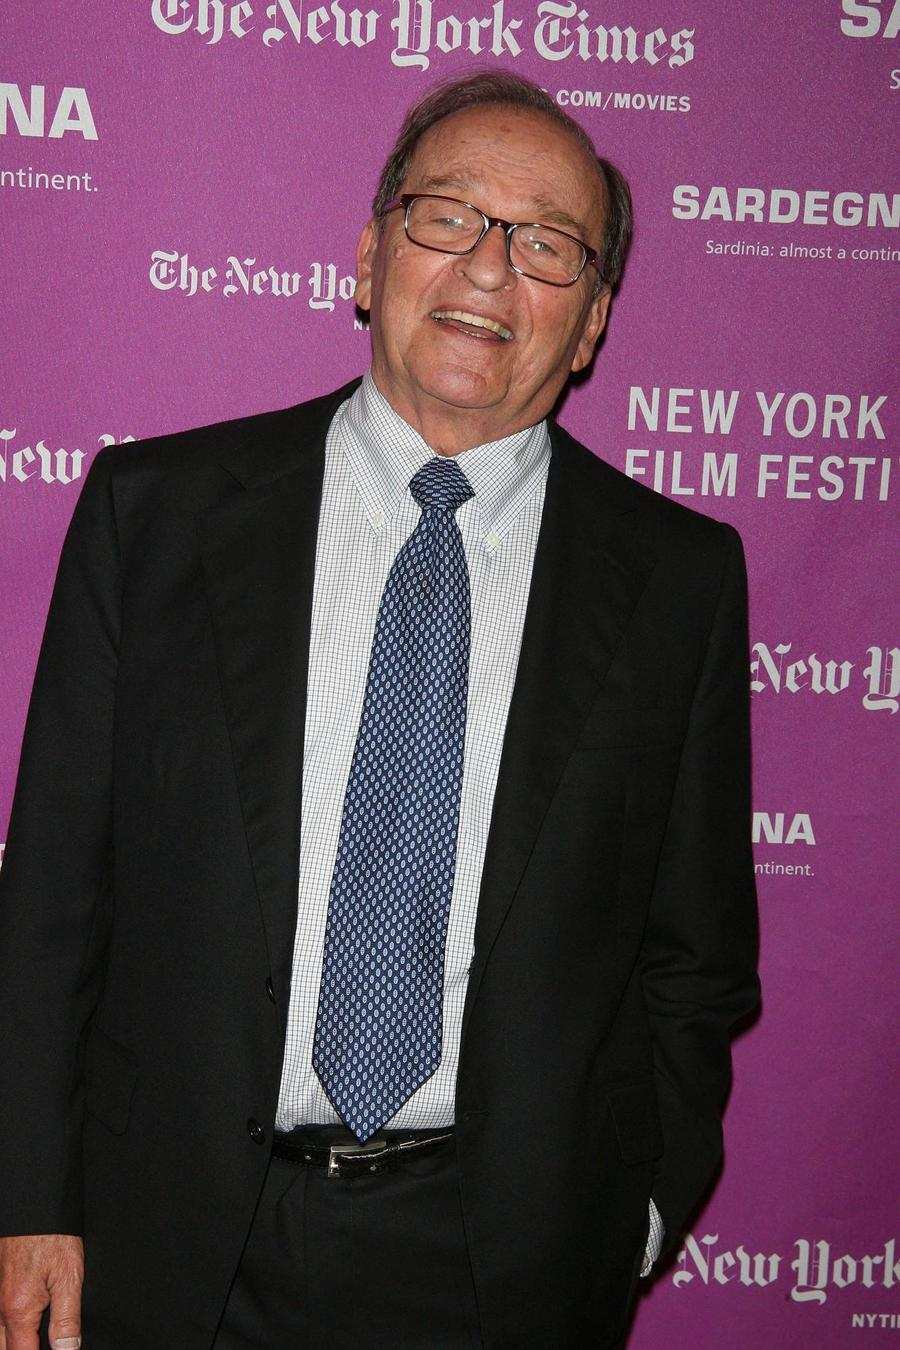 Filmmaker Watched All 44 Sidney Lumet Films Back-to-back For Documentary